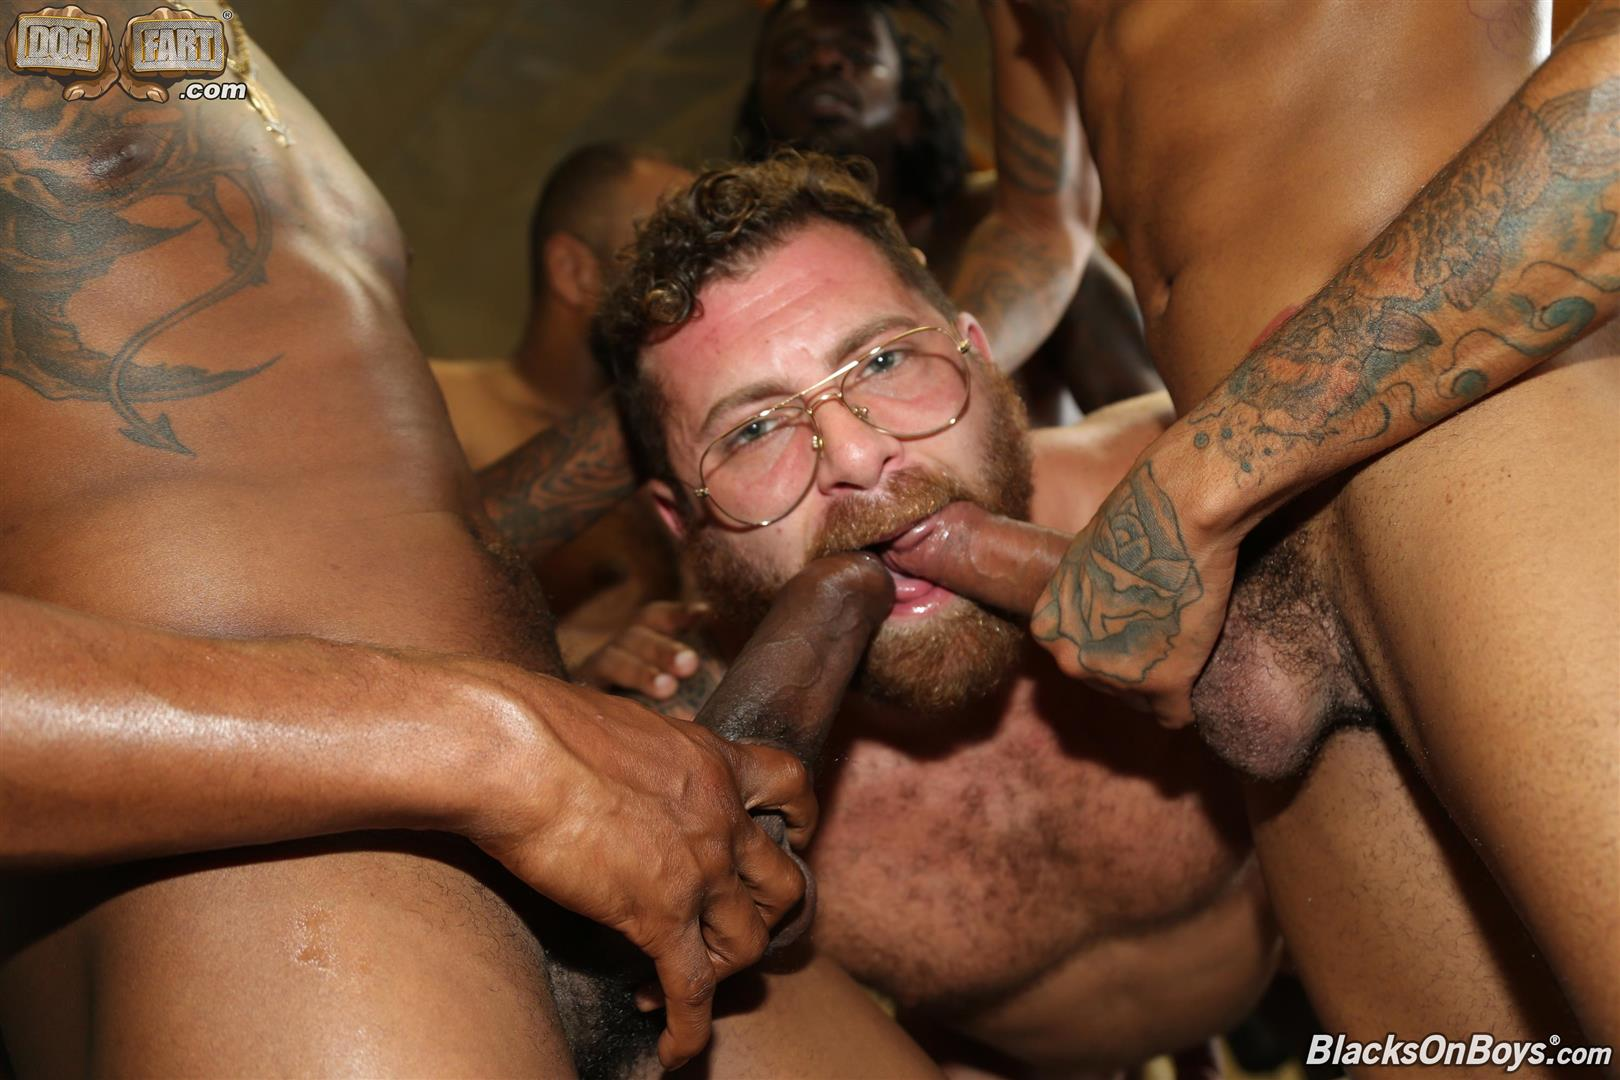 Blacks-On-Boys-Riley-Mitchel-Fame-Knockout-Leon-Redd-Ray-Diesel-Big-Black-Cock-17 Hairy Muscle Daddy Riley Mitchel Takes Four Big Black Cocks Up The Ass